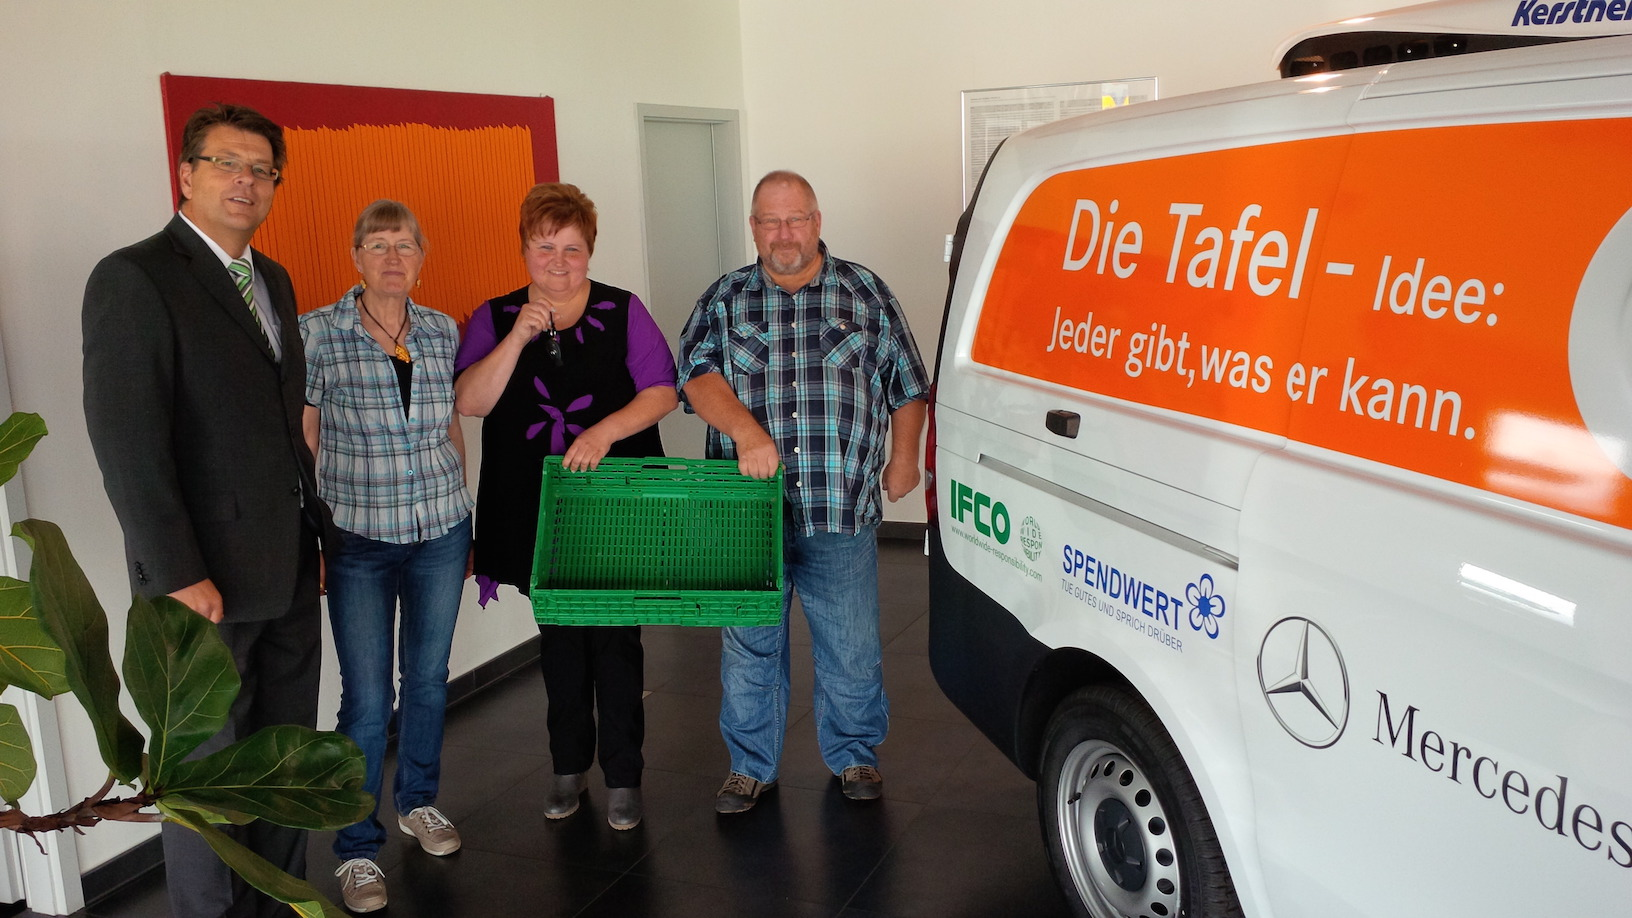 IFCO supports Food Bank Kappeln with Vehicle Sponsoring